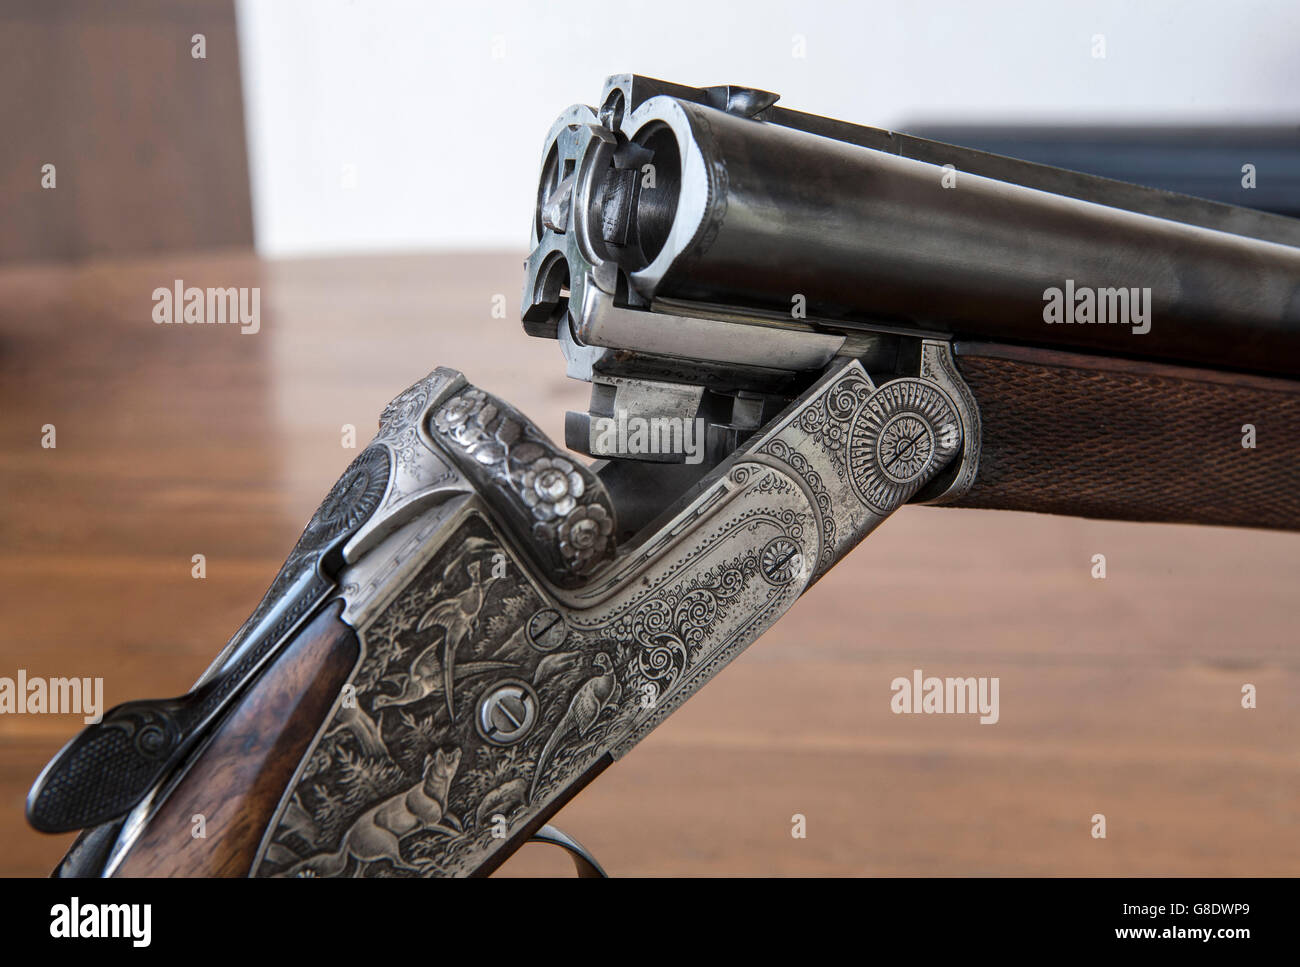 rifle barrels stock photos rifle barrels stock images alamy